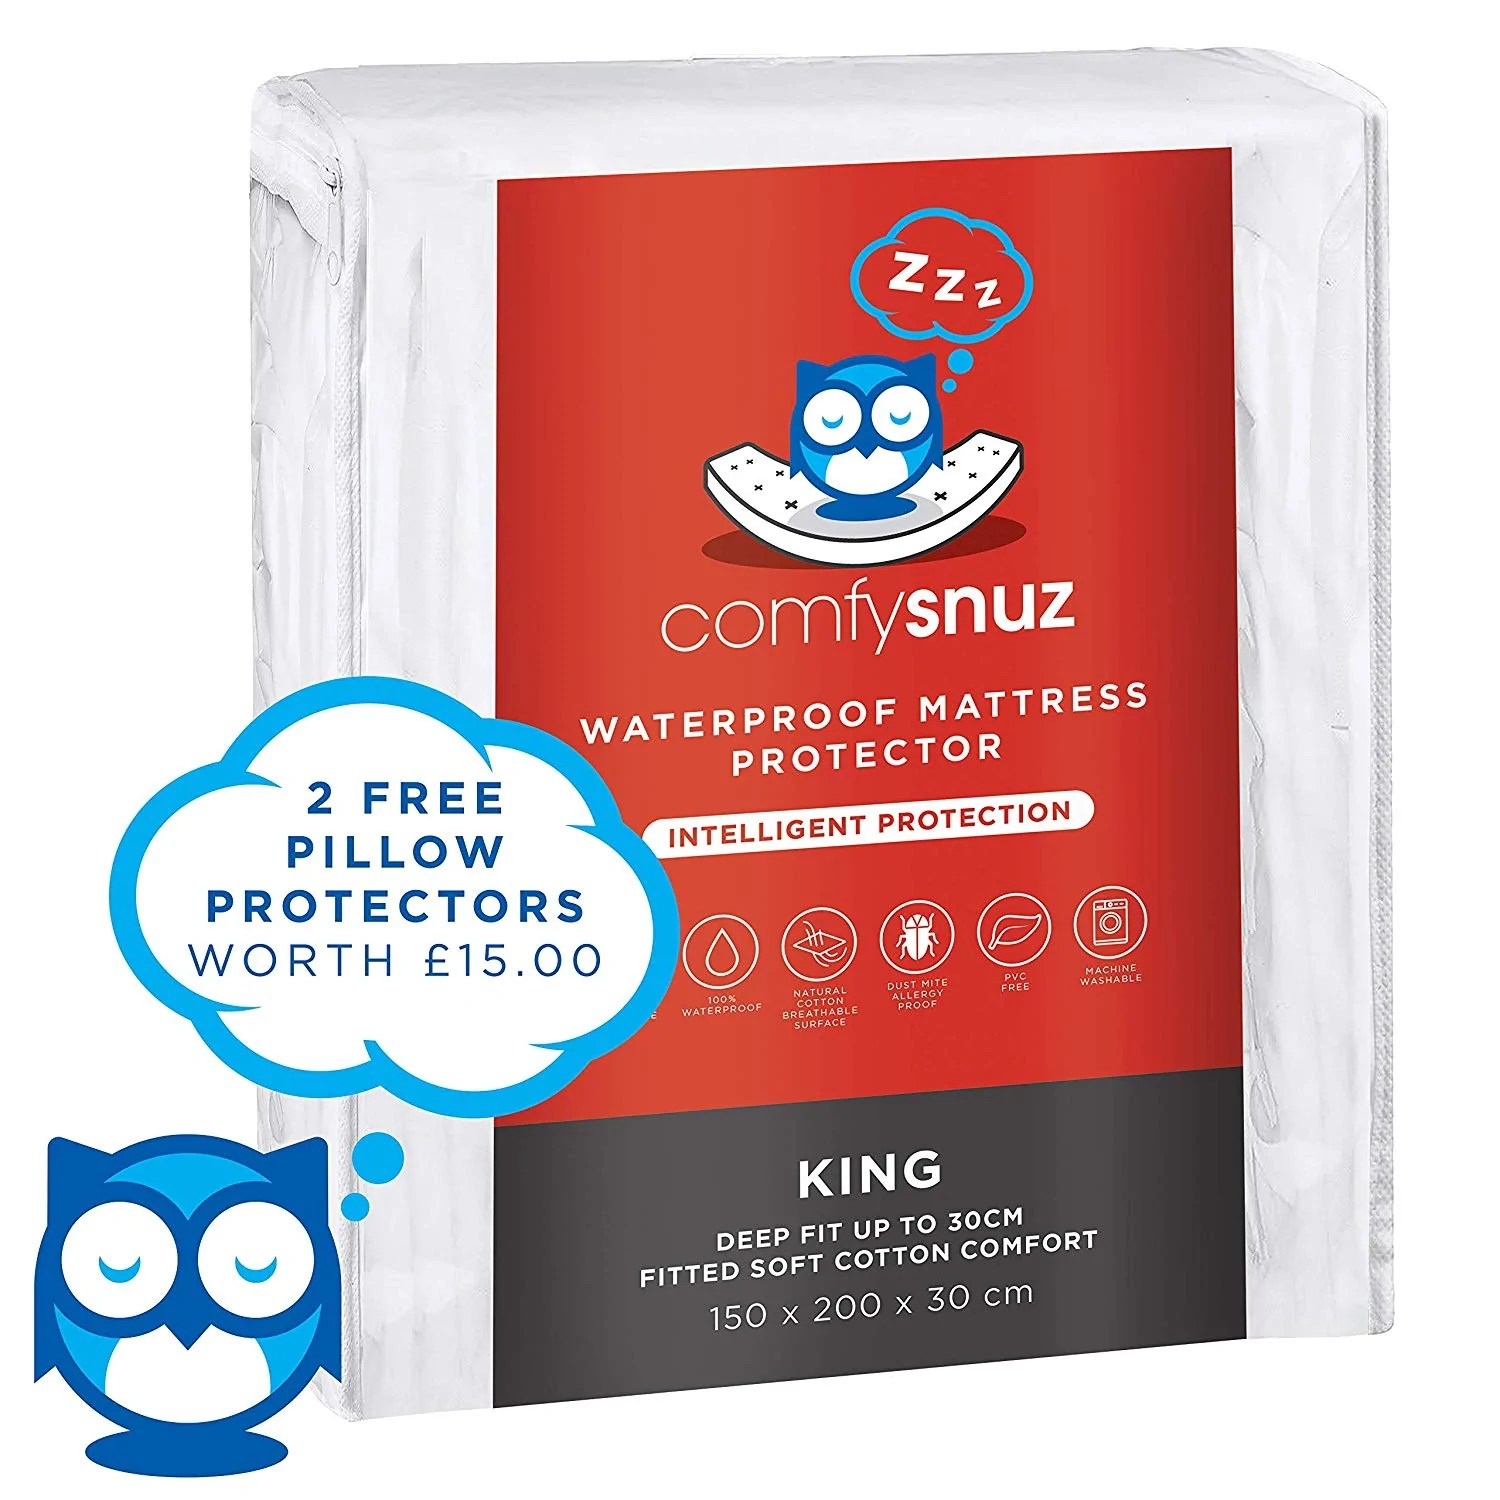 Super King Size Waterproof Mattress Protector Comfysnuz King Size Waterproof Mattress Protector Camby Home